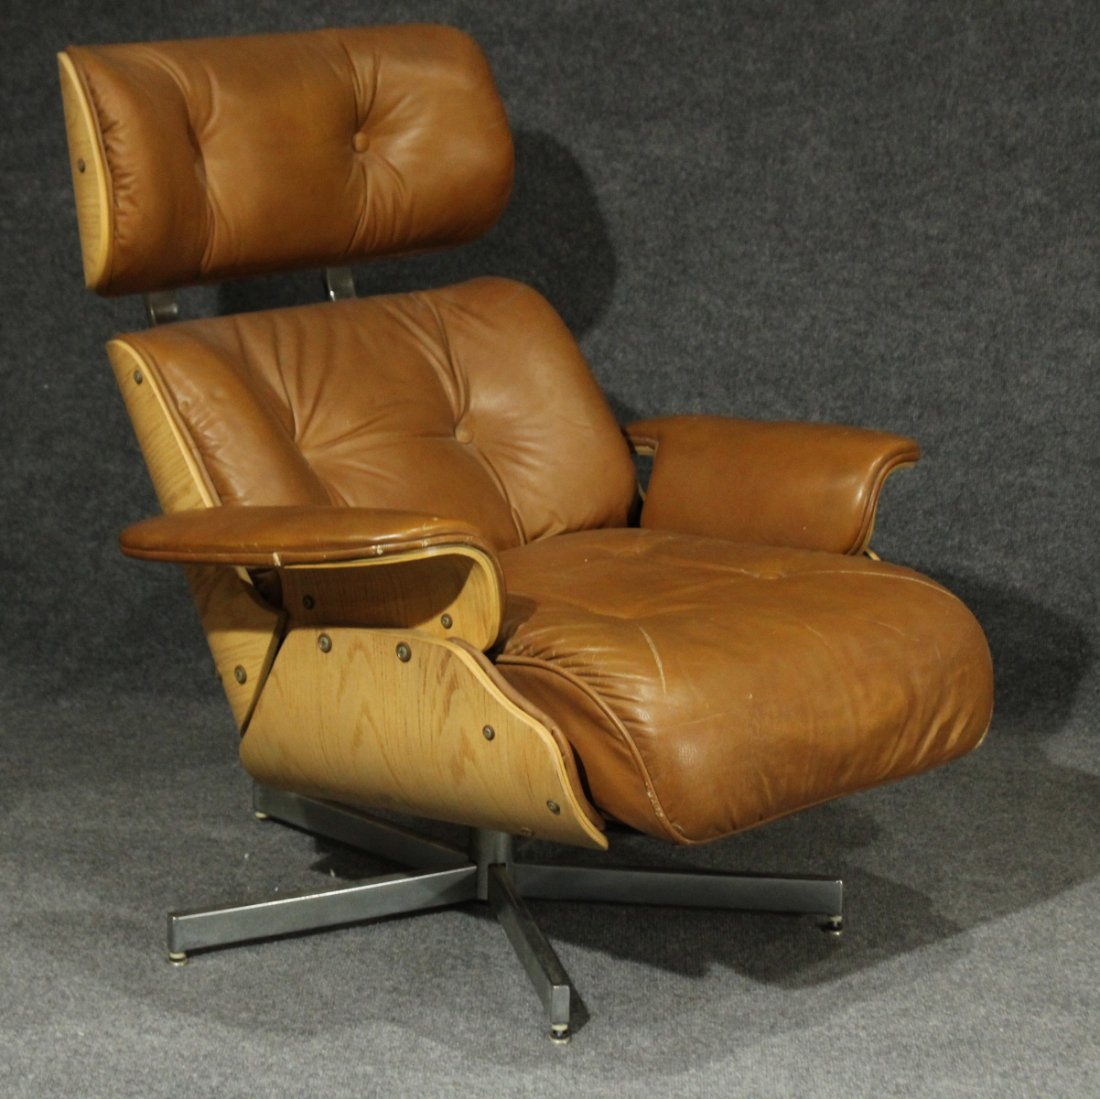 HERMAN MILLER EAMES STYLE RECLINER CHAIR BROWN LEATHER - 2